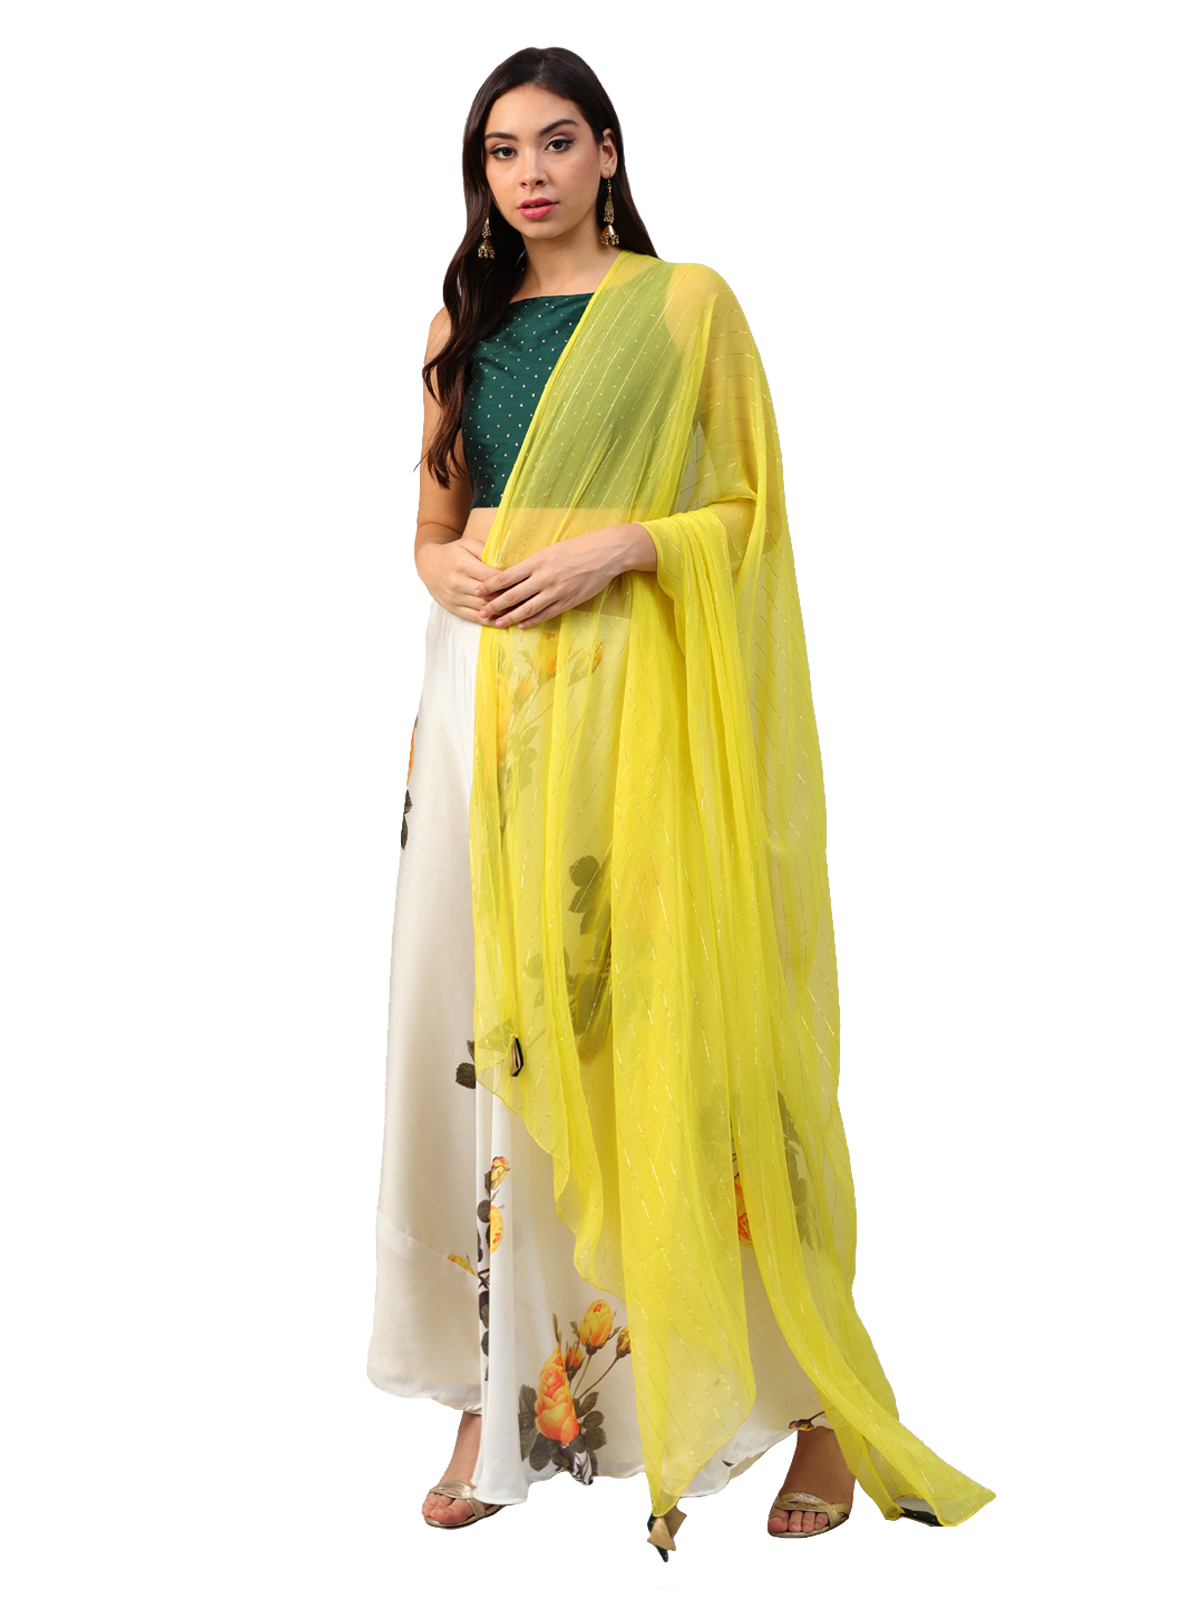 828019359b2 Inddus Green Art Silk Unstitched Top and Off White   Yellow Satin Printed Semi  stitched Skirt with Solid Net Dupatta - Inddus - 2777418